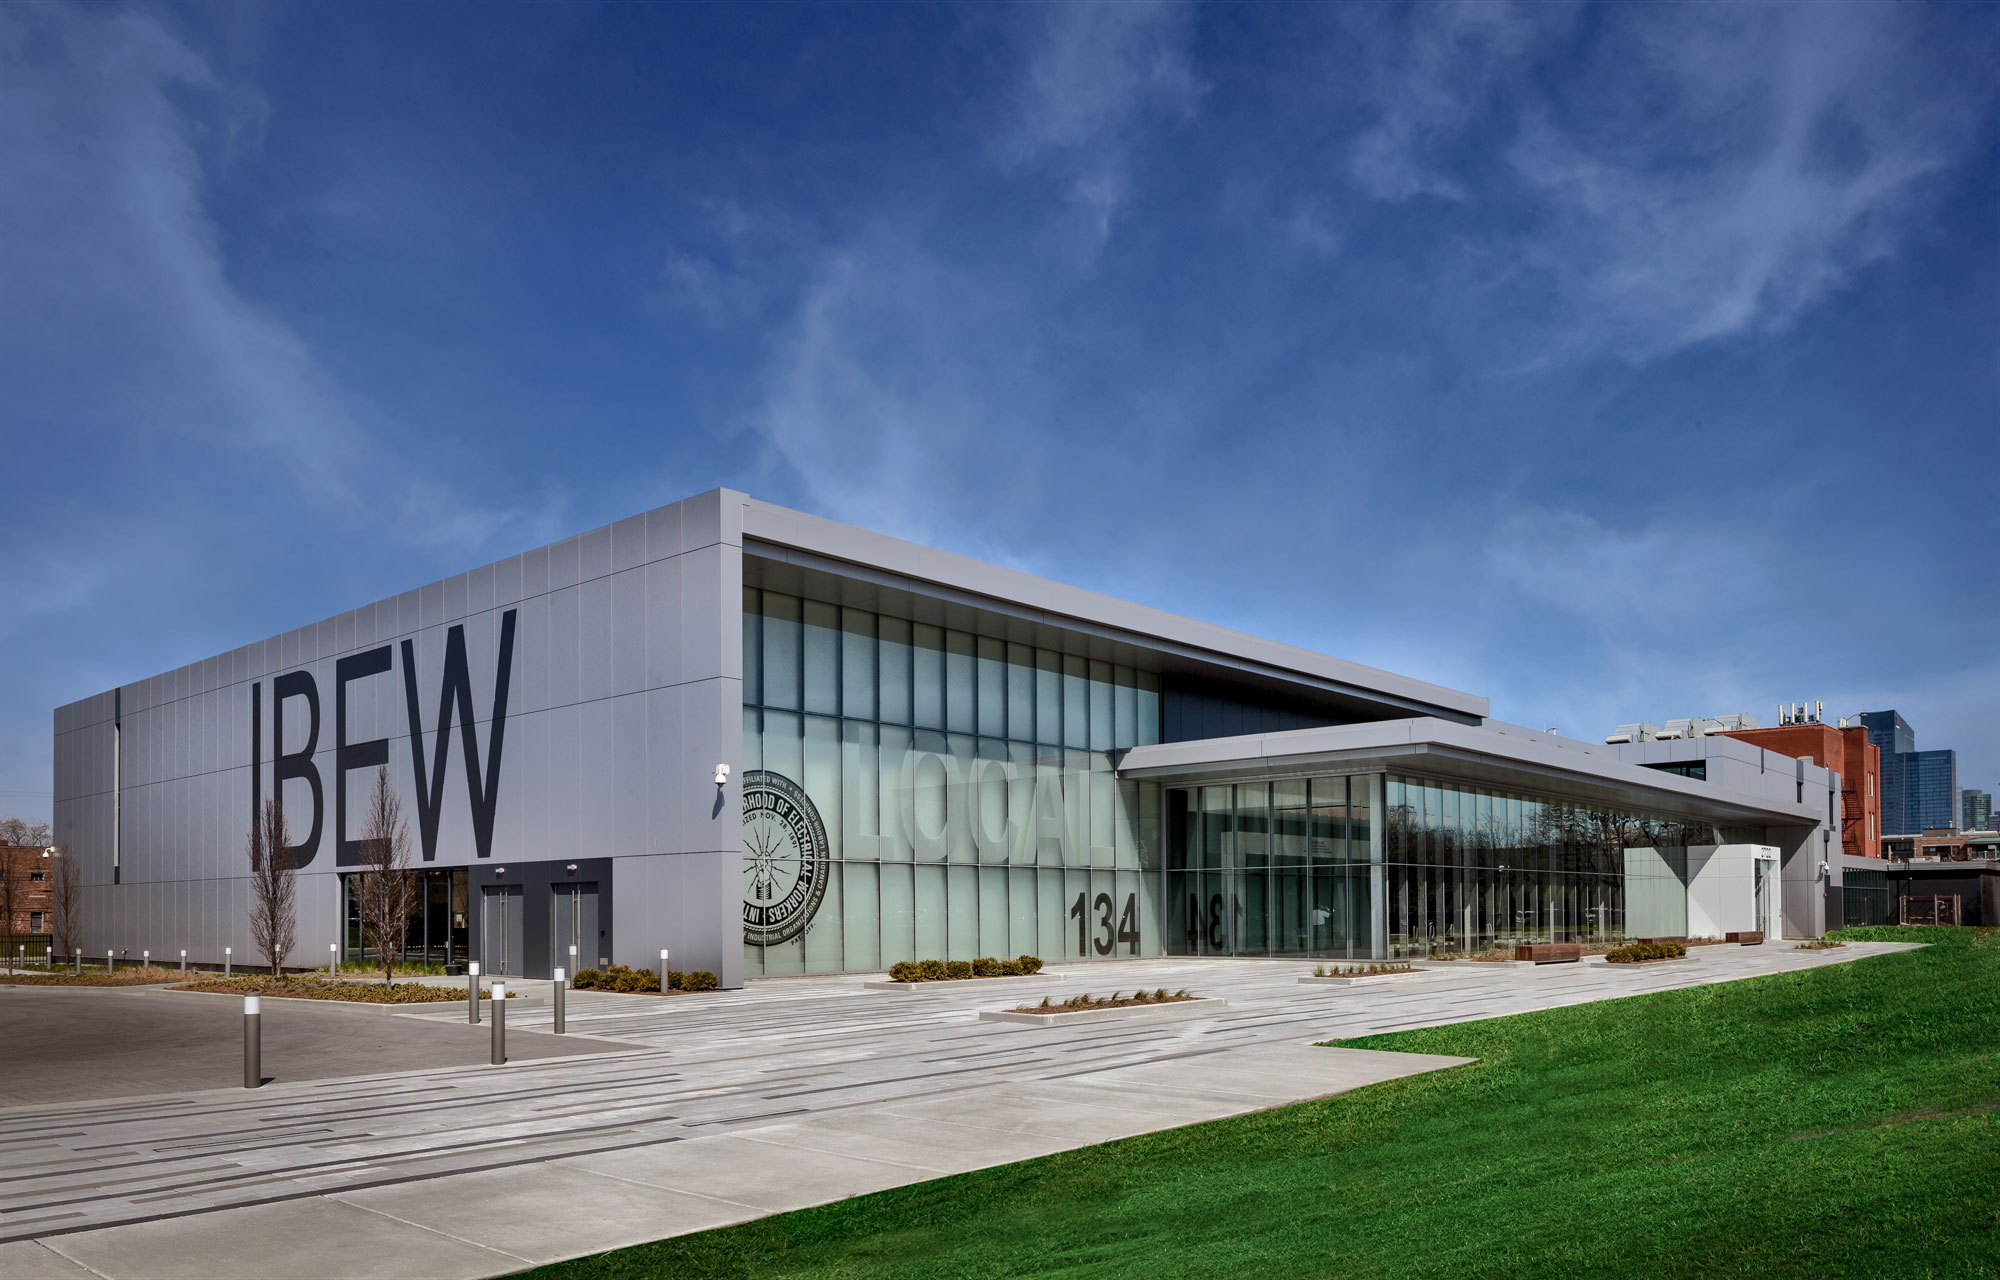 IBEW Local 134 Headquarters, Wight Company, Sobotec, Architectural Panel Systems, Alucobond PLUS, Photography Paul Schlismann